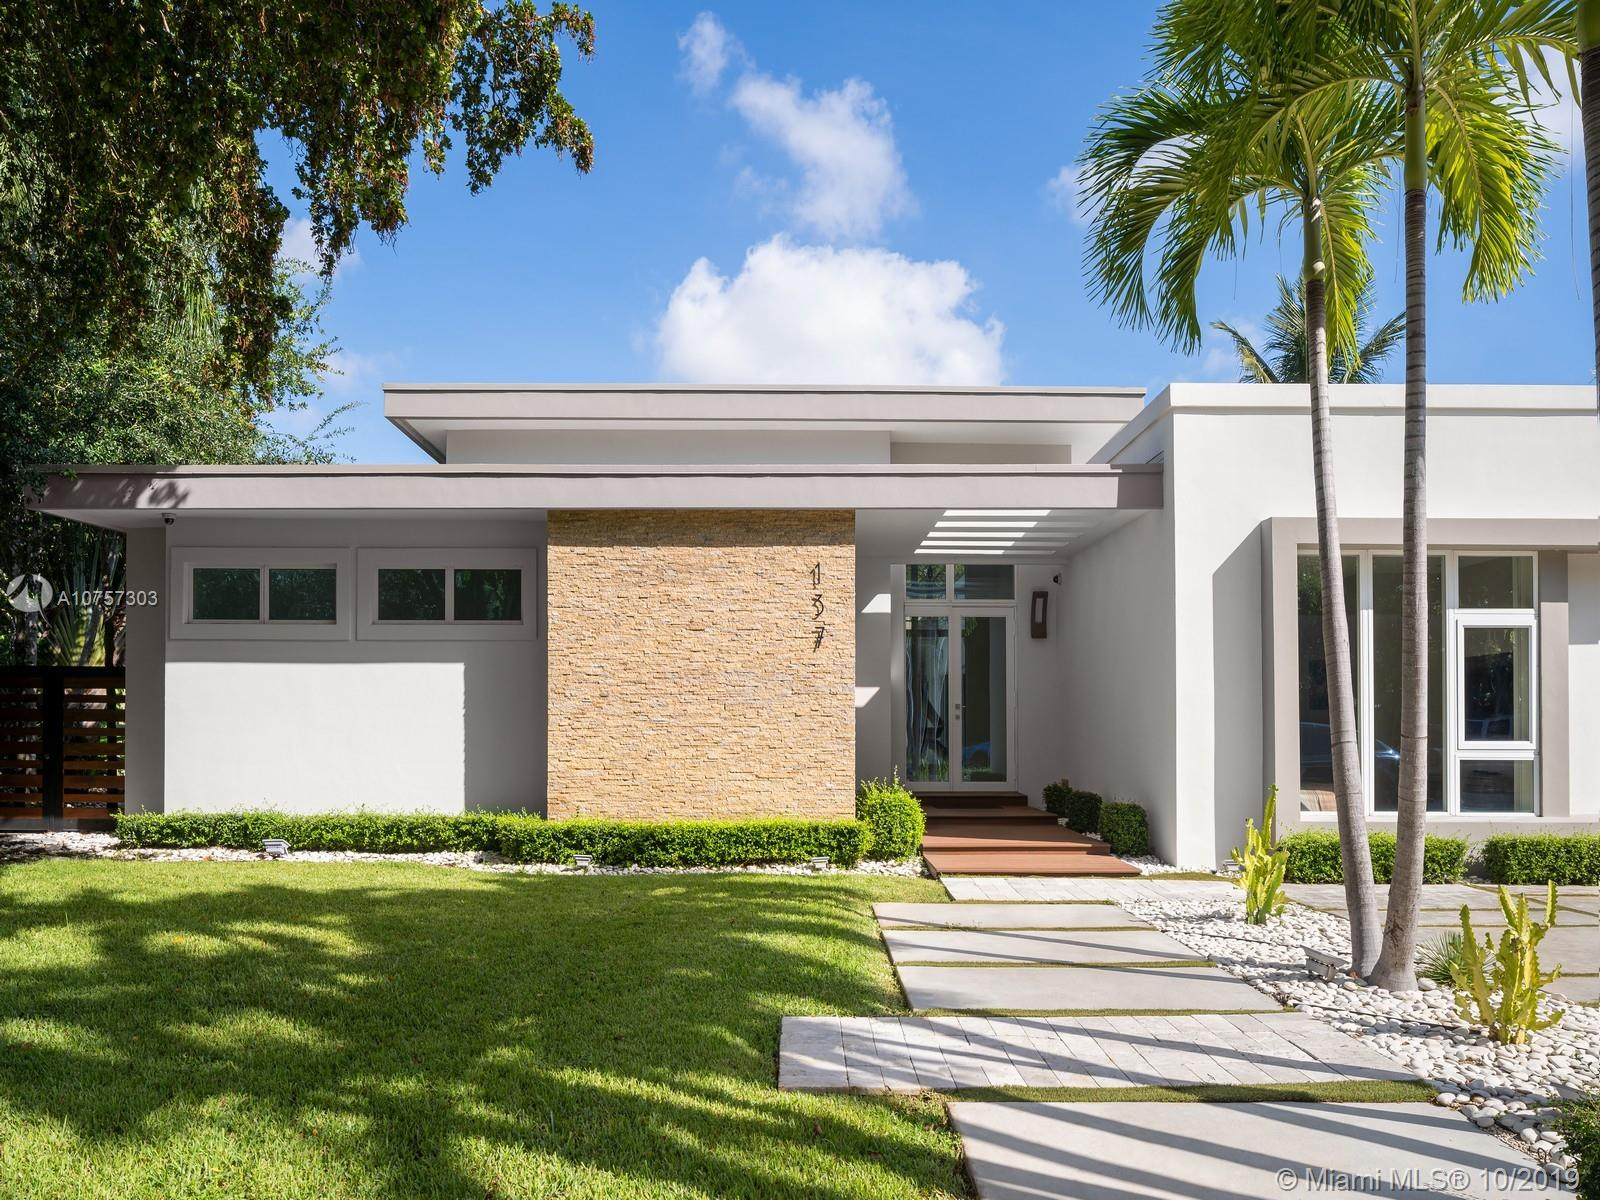 Bay Heights Homes For Sale Search All Miami Houses For Sale